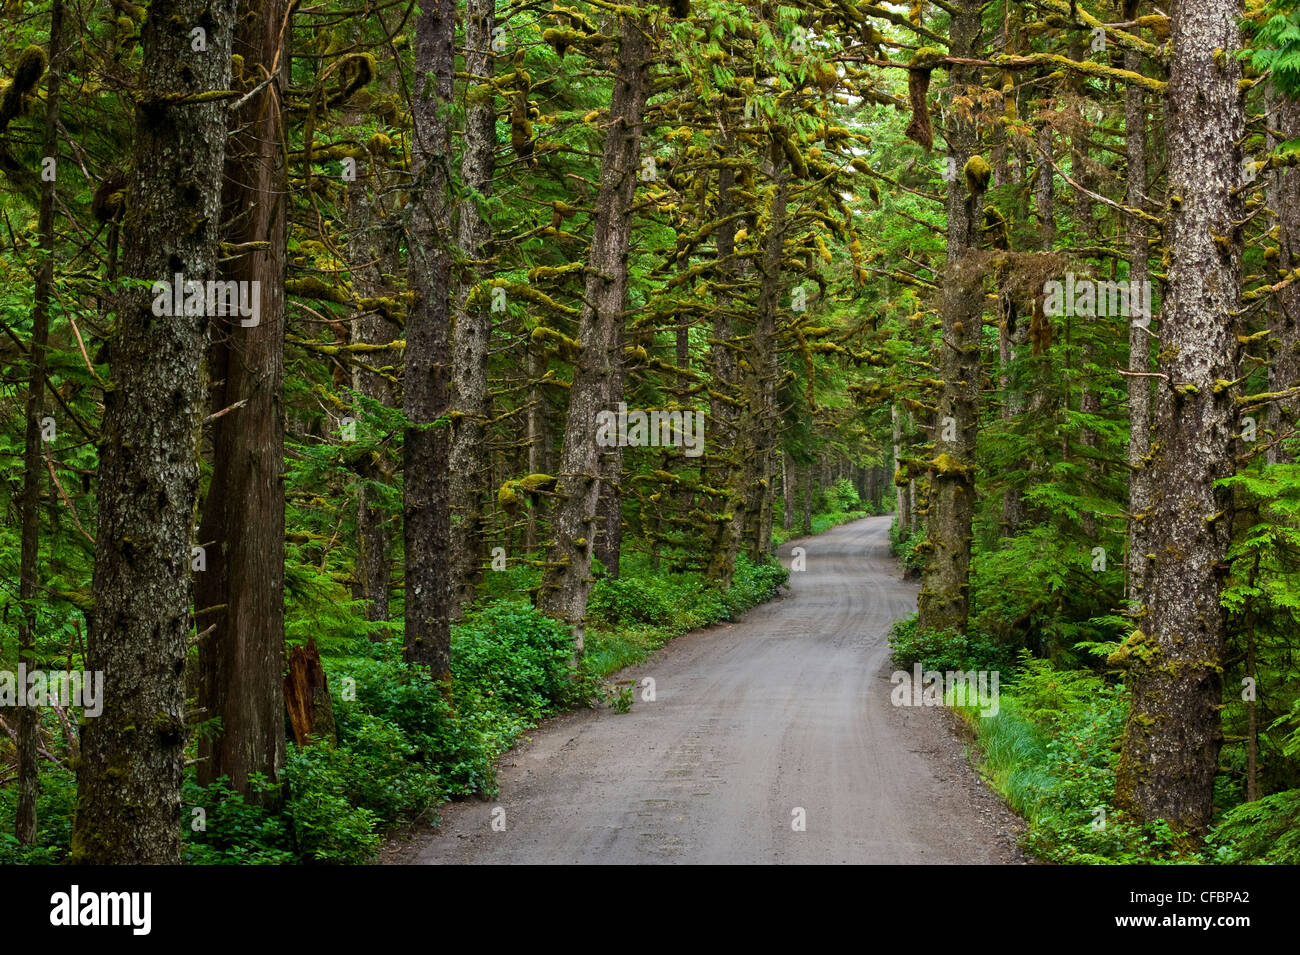 Road through rainforest, Tow Hill, Naikoon Provincial Park, Queen Charlotte Islands, British Columbia, Canada - Stock Image